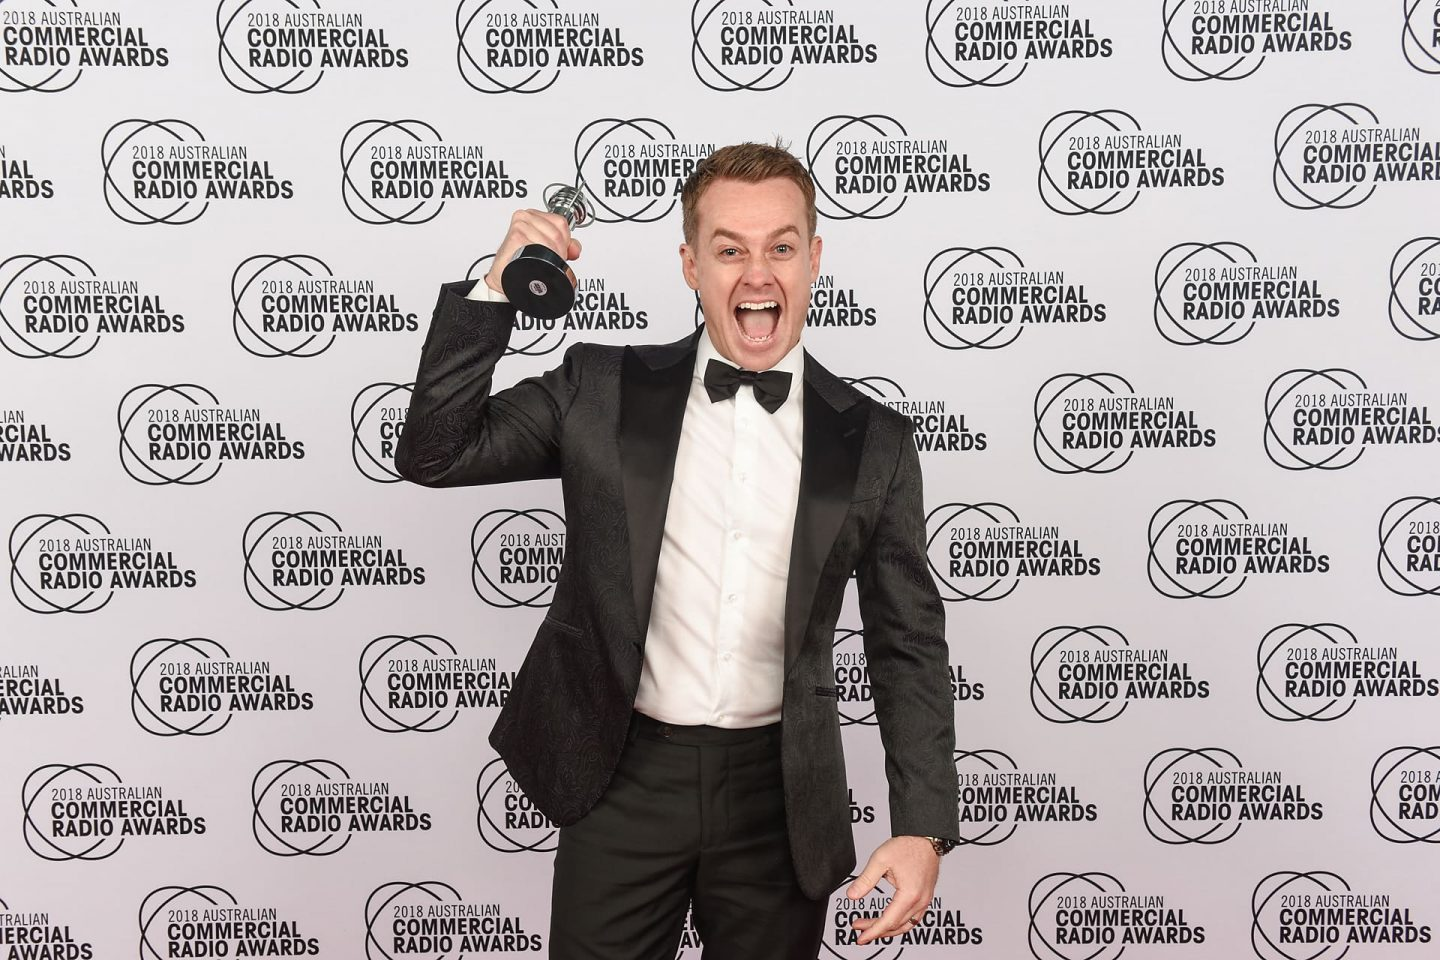 Grant Denyer at the Commercial Radio Awards